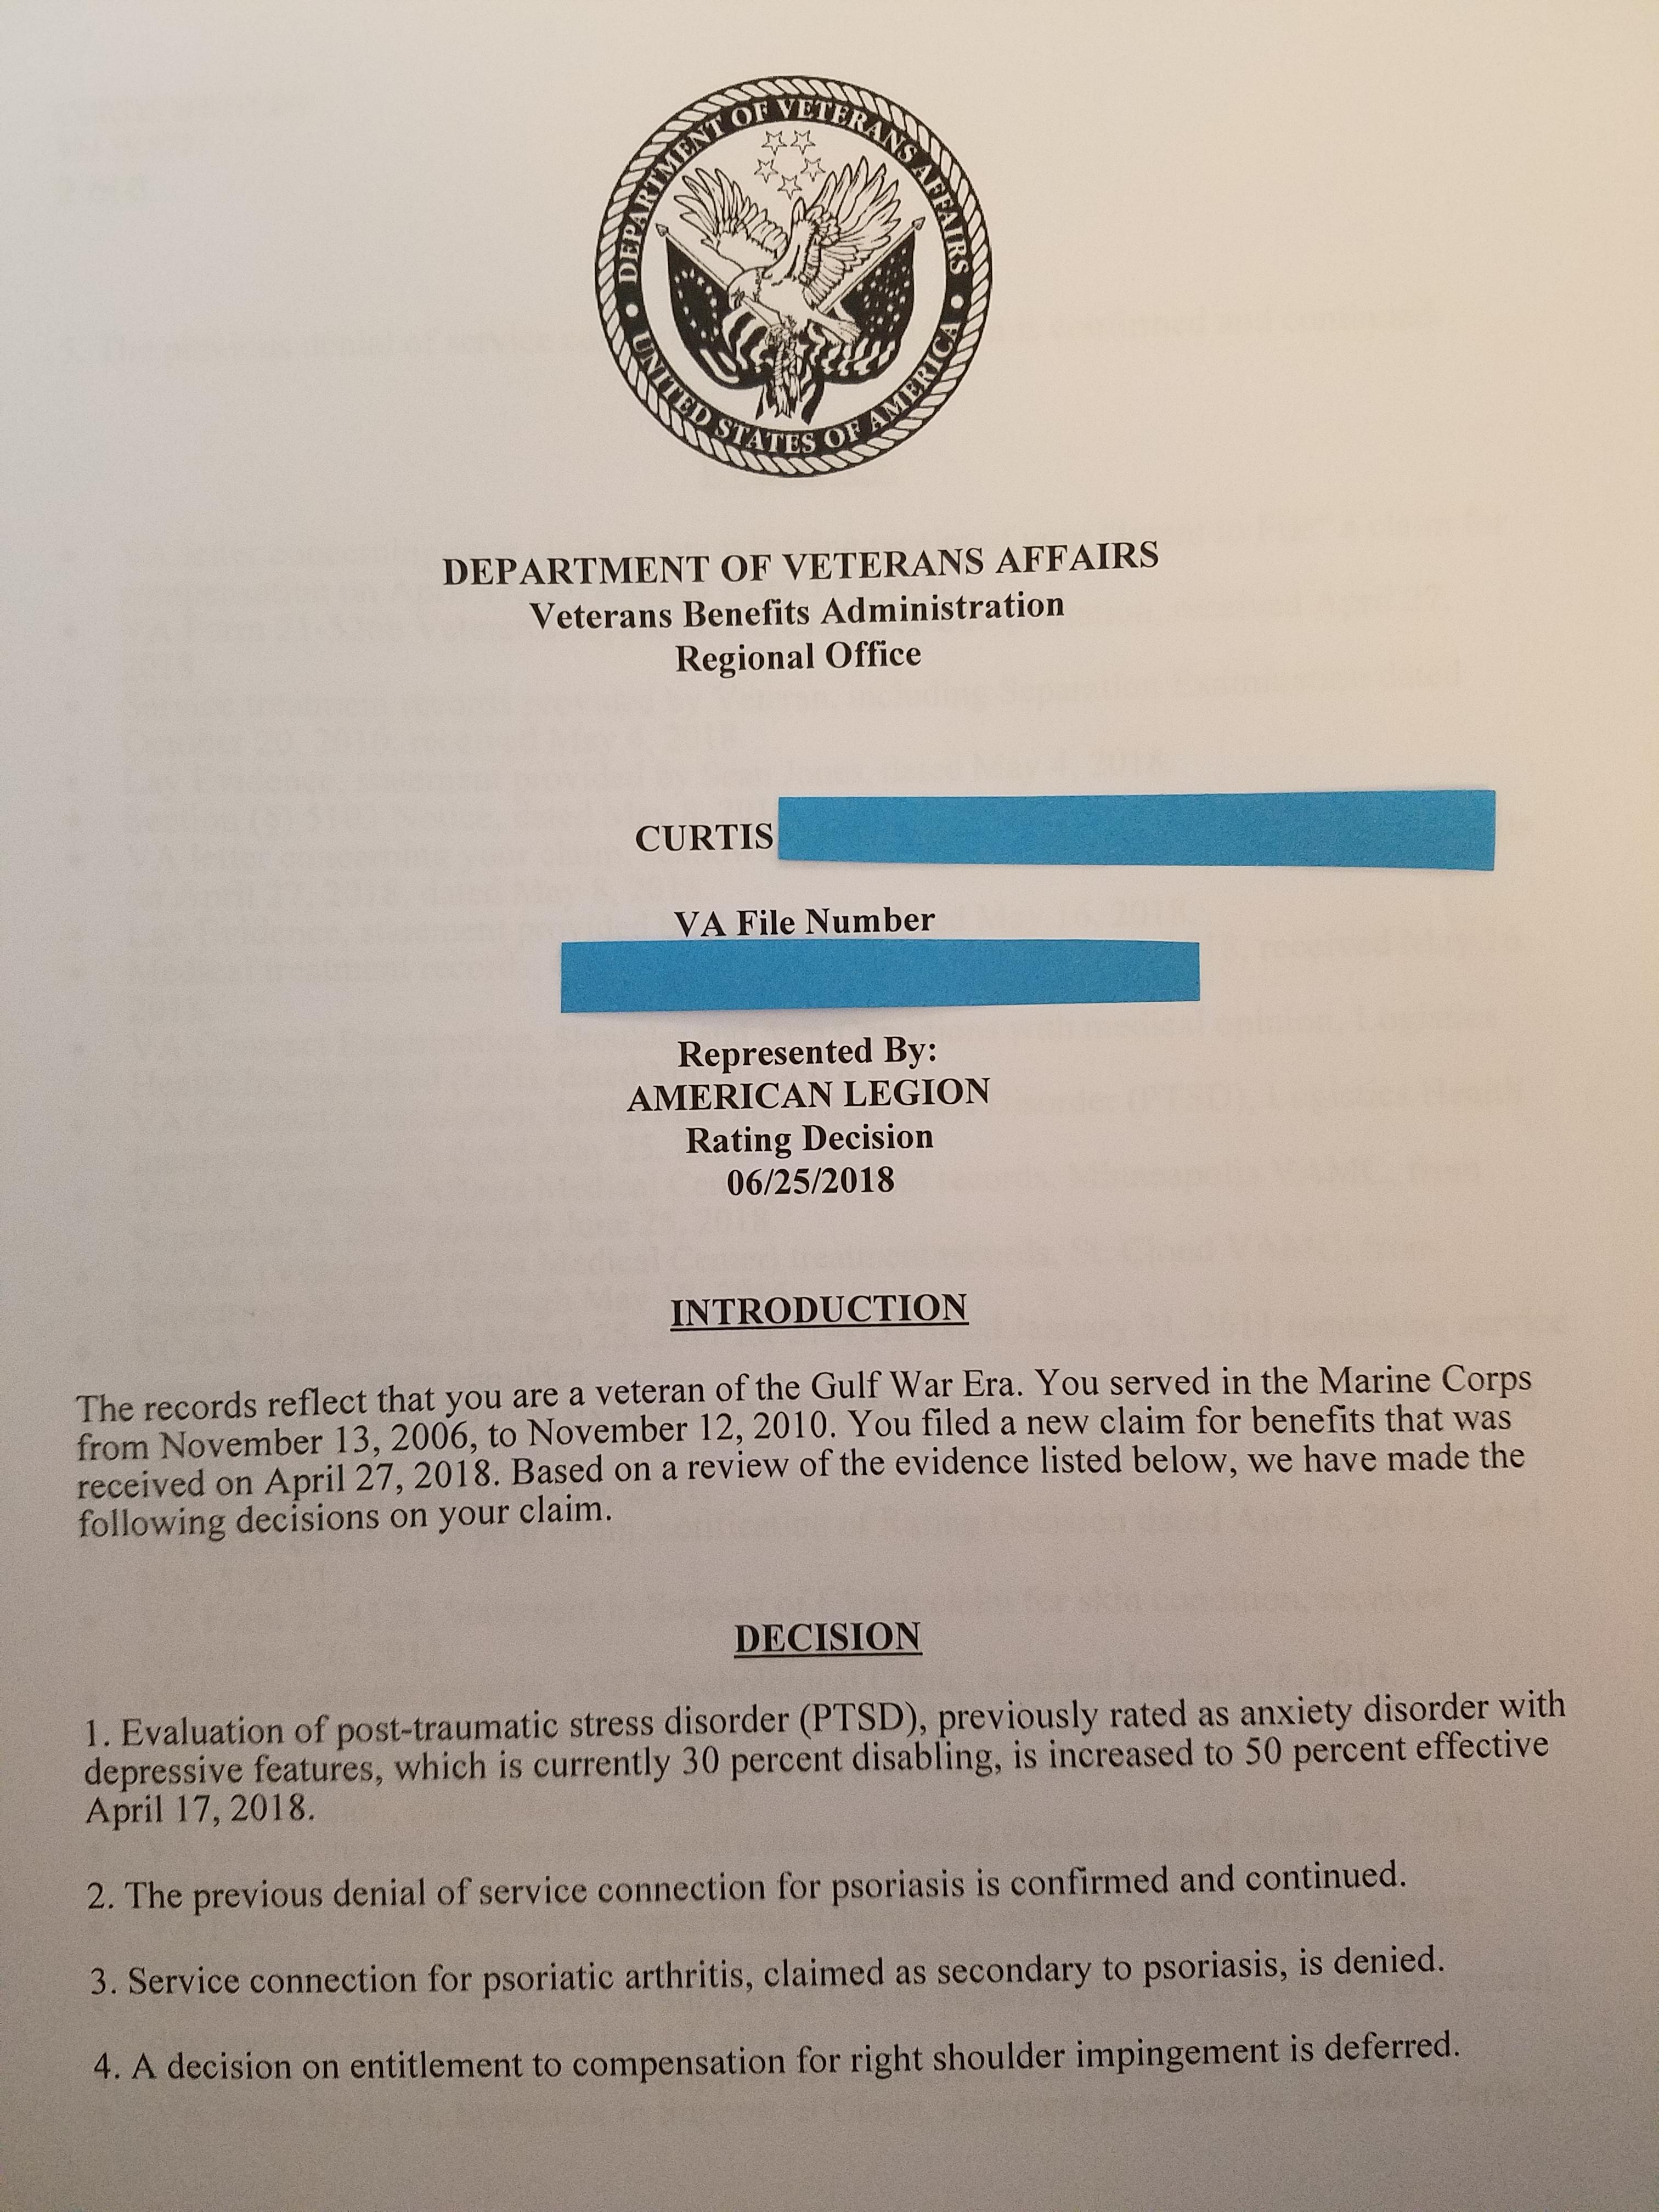 My Claim: Increased, Denied and Deferred - Page 2 - VA Disability